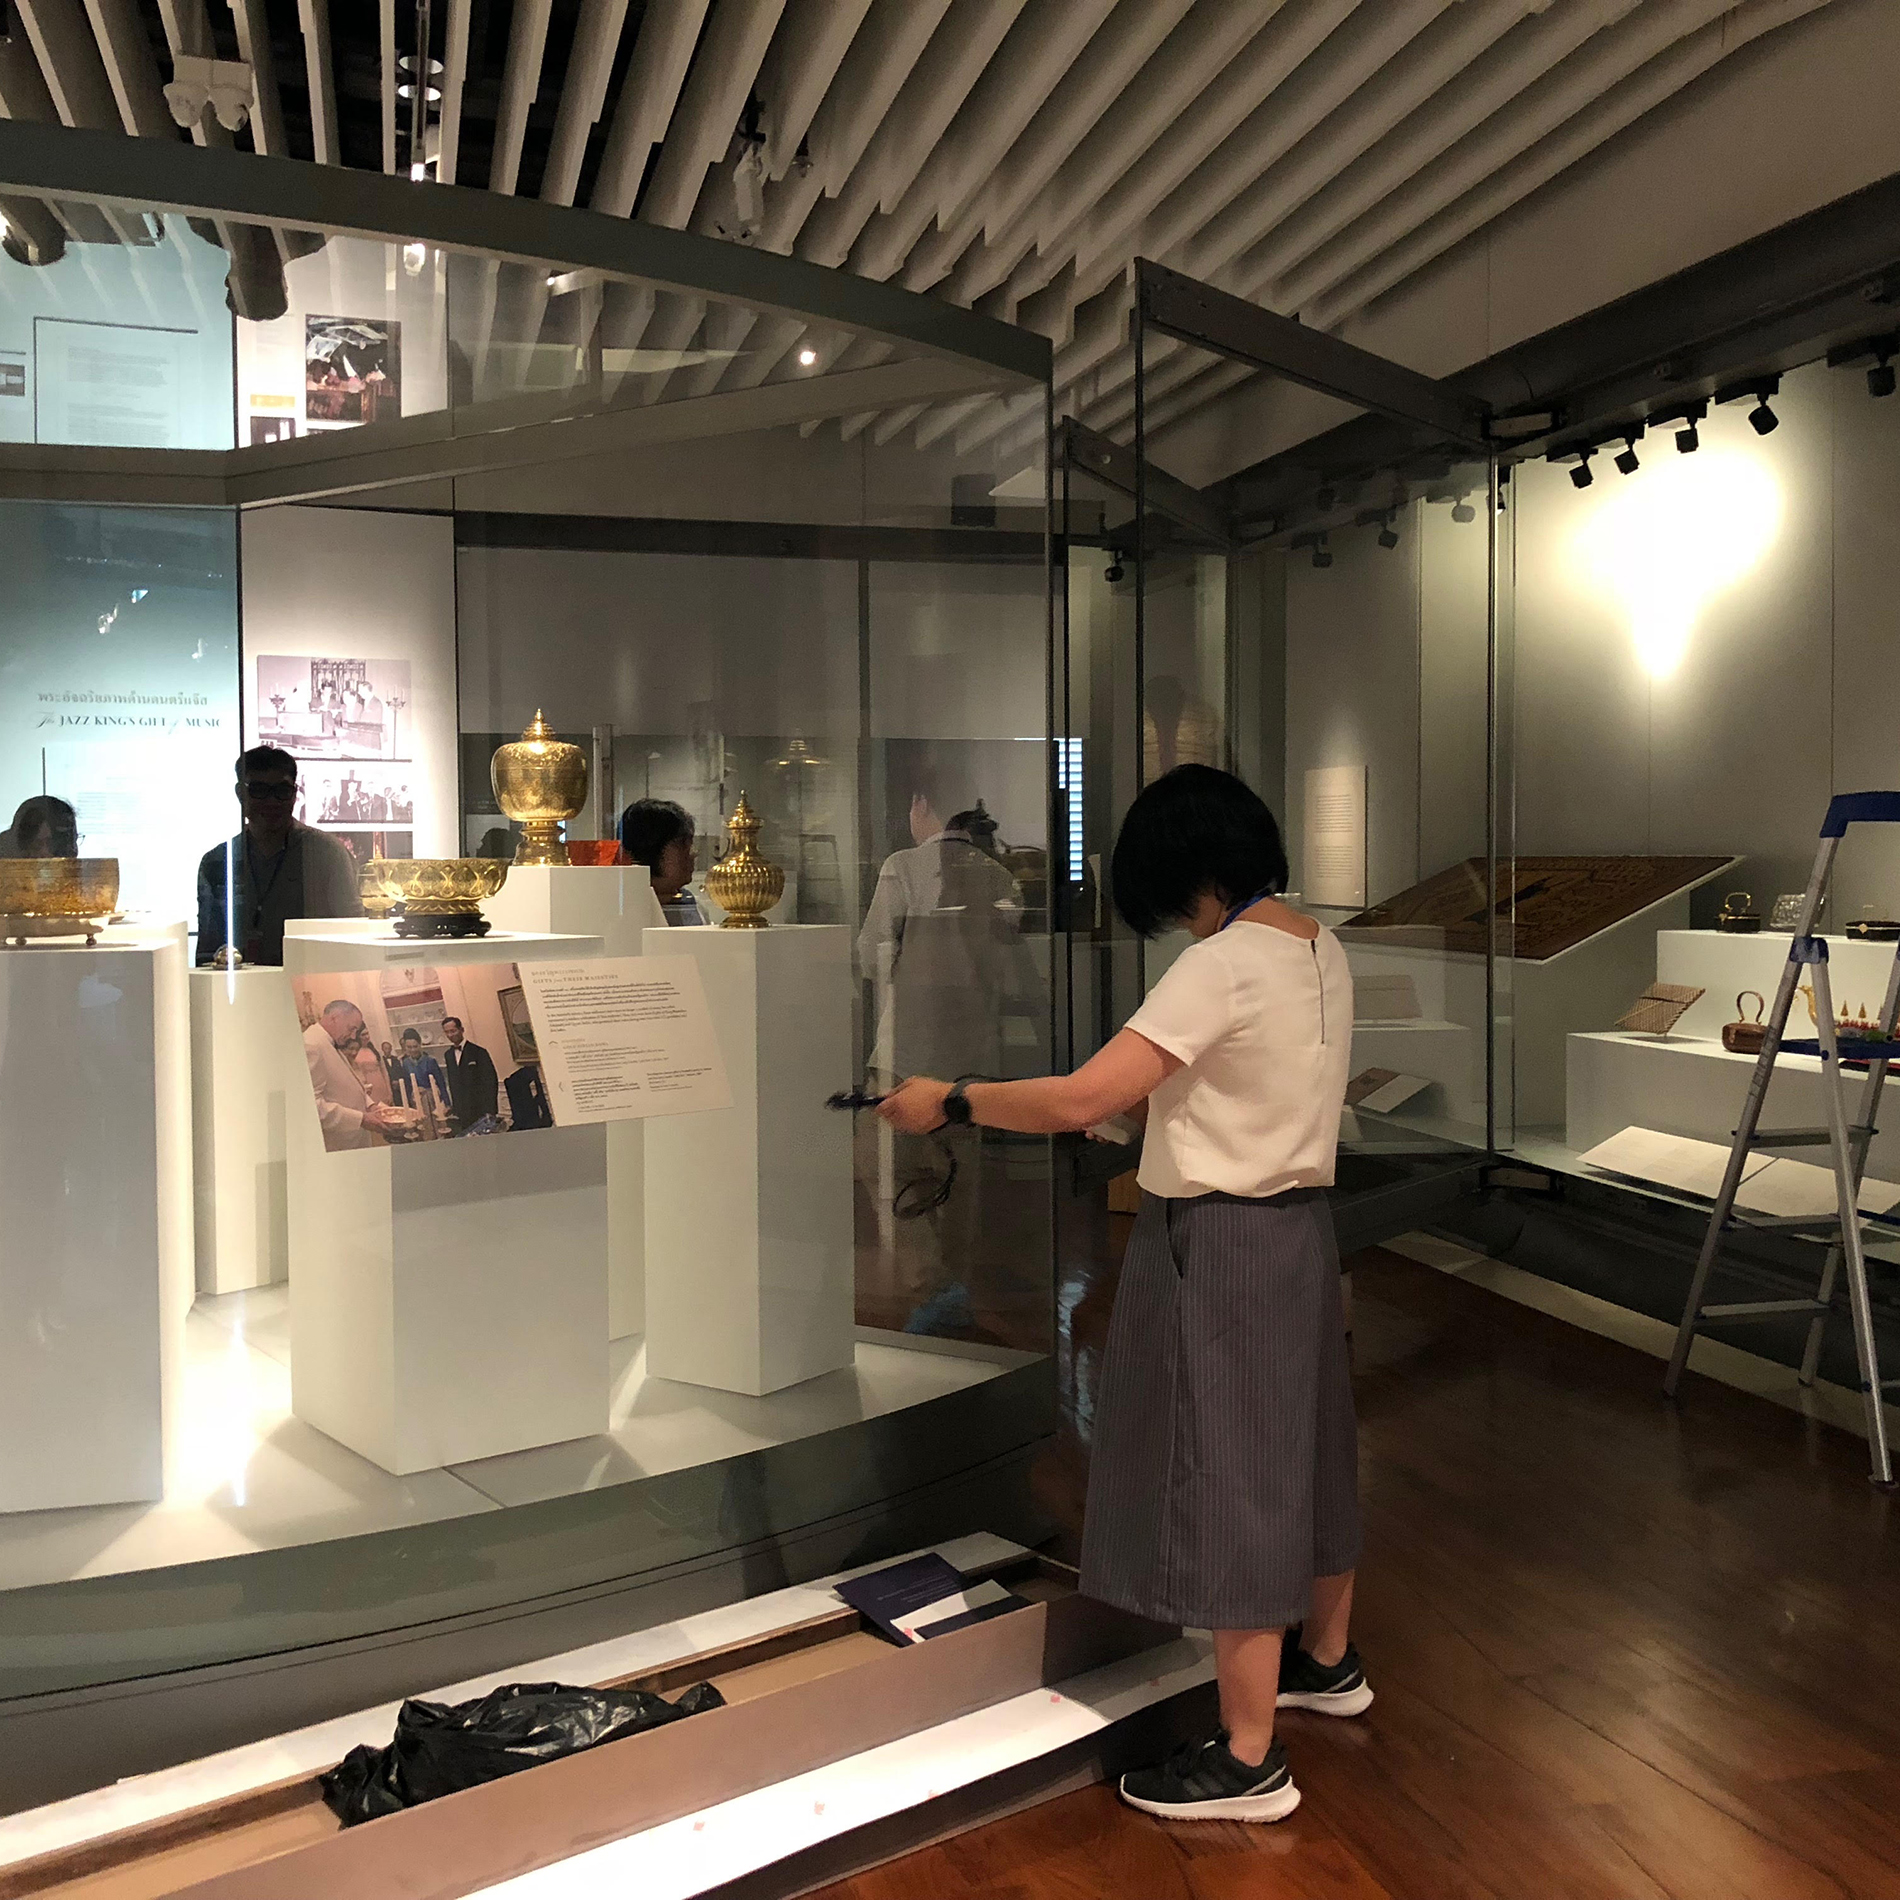 Exhibition Booth Bangkok : Archives loans artifacts to thai exhibition national